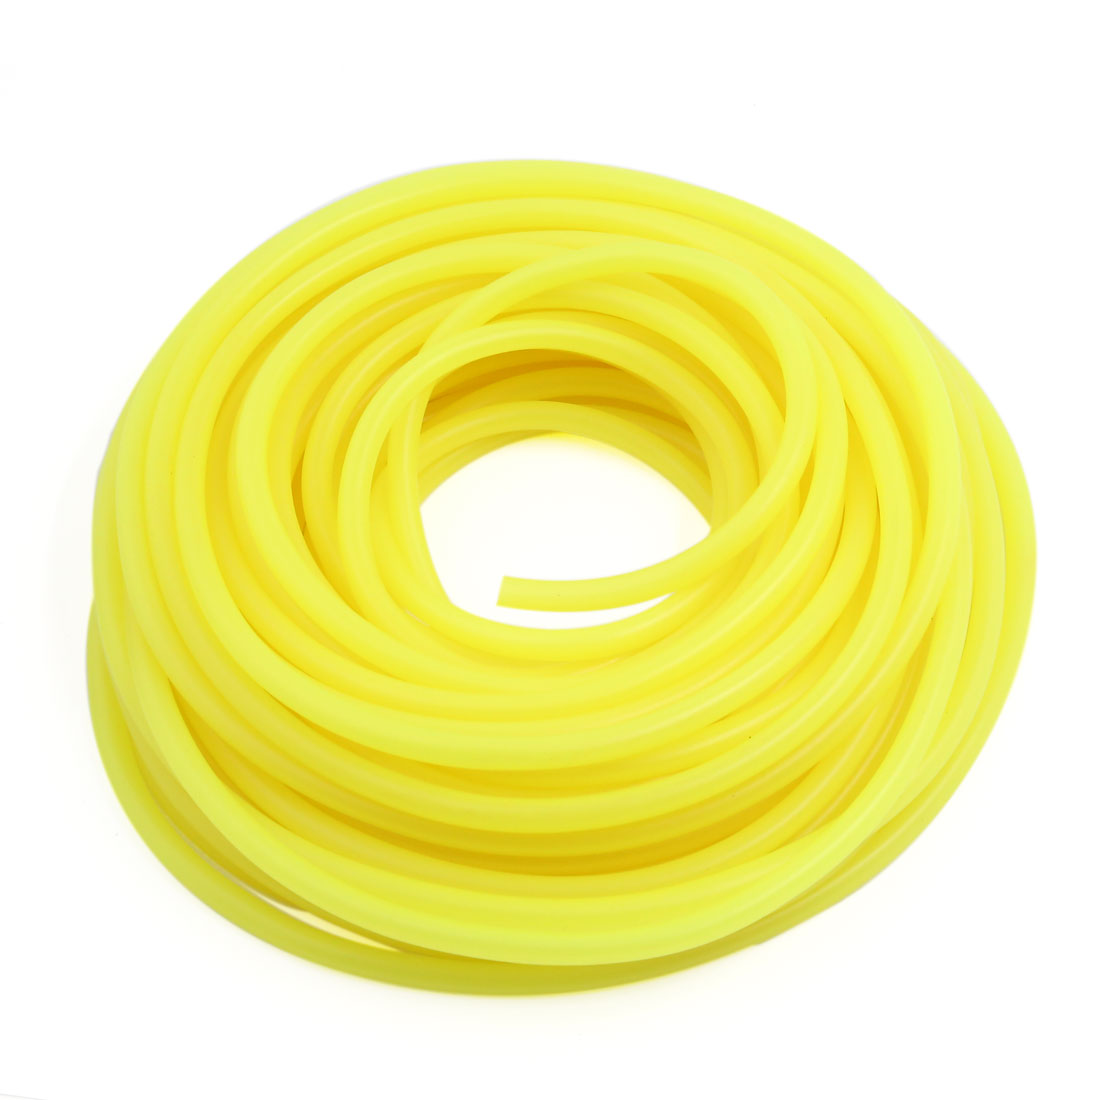 Yellow 18m Dia 5mm Silicone Fuel Petrol Pipe Tube Hose for Motorcycle